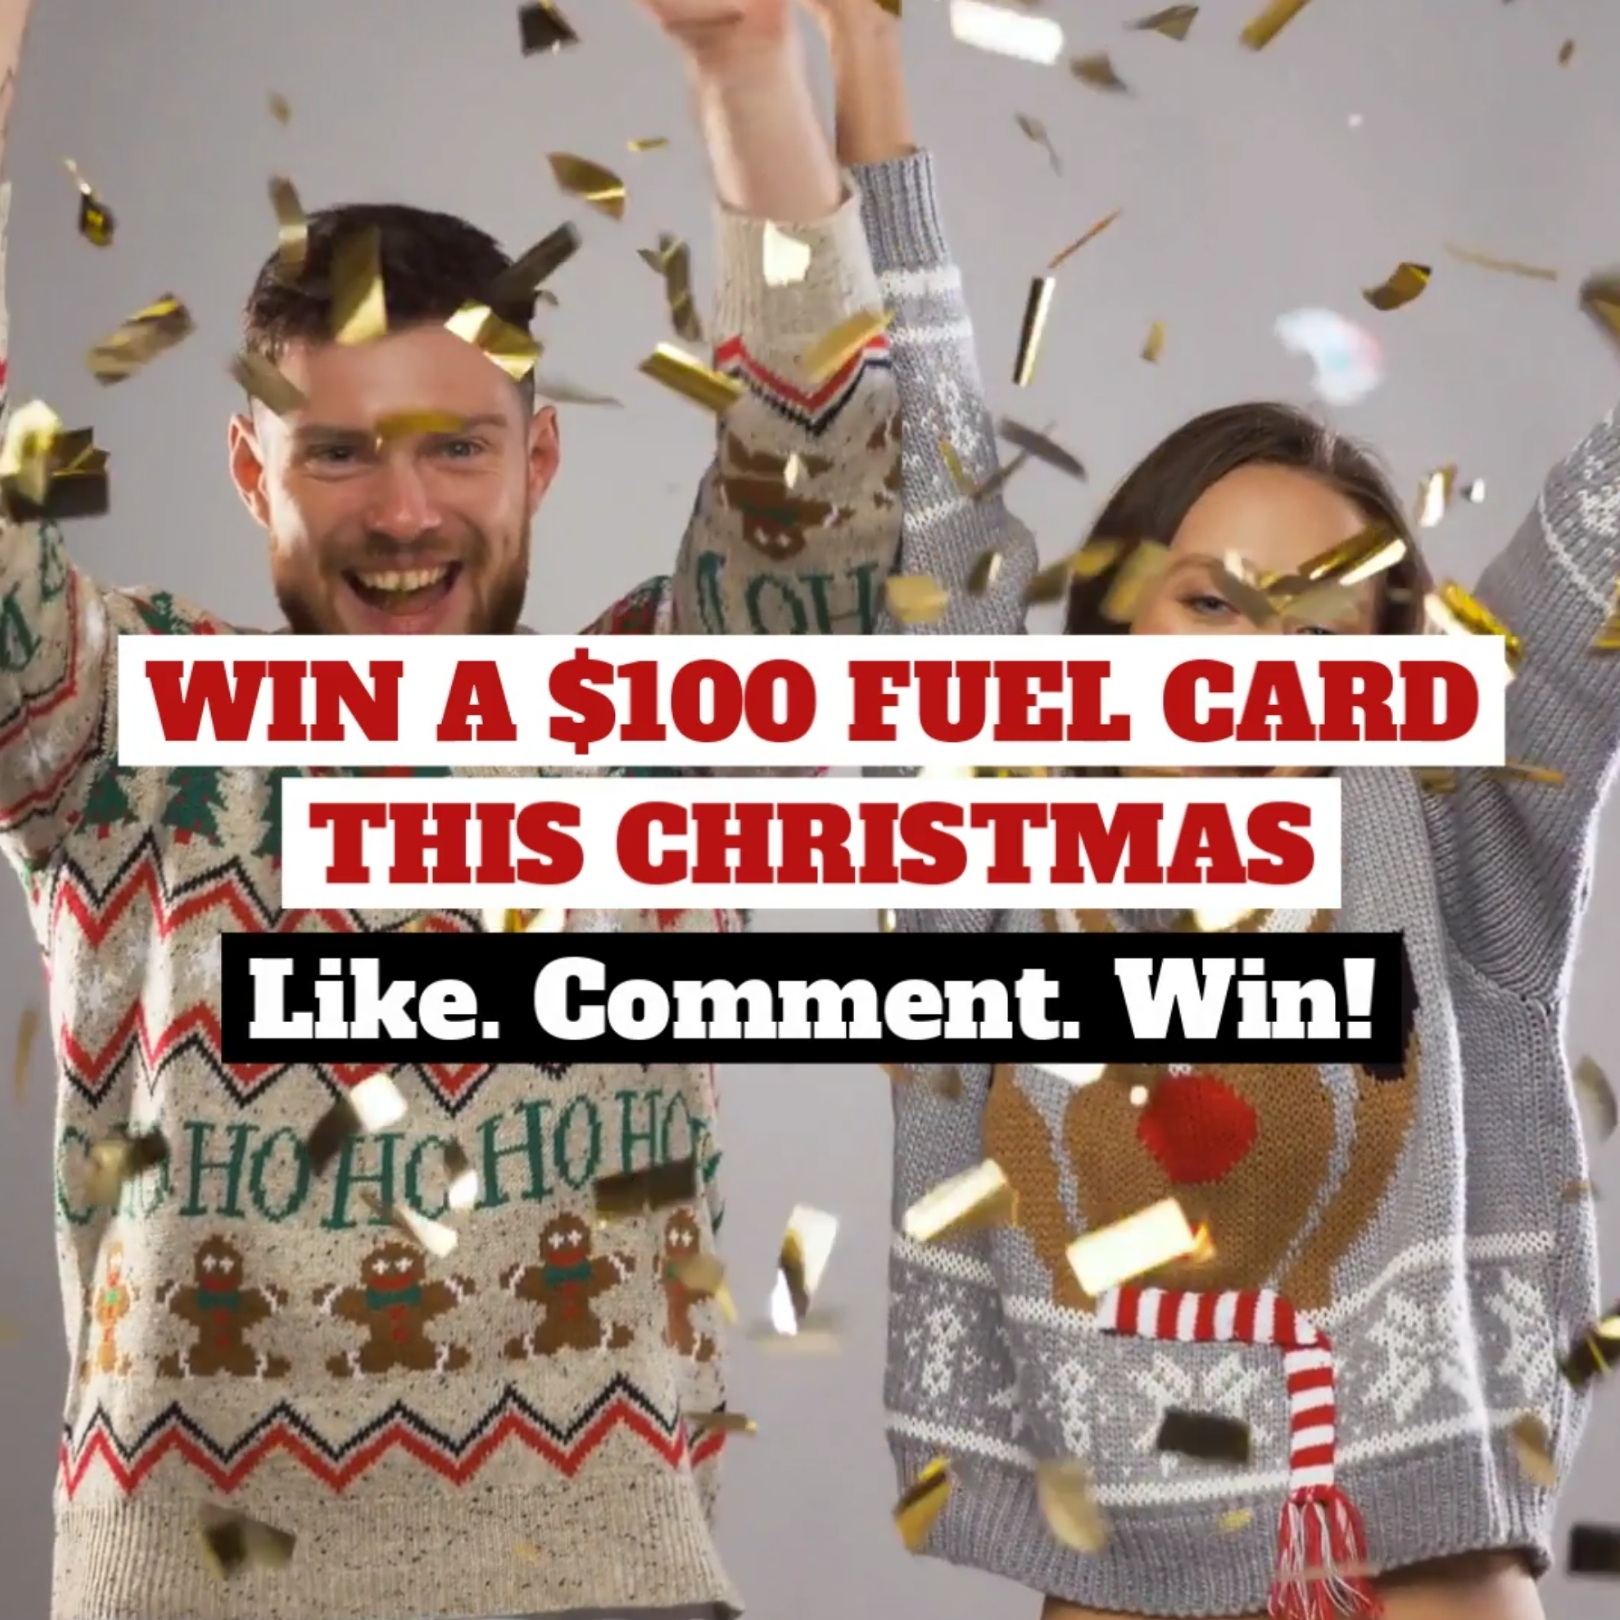 WIN A $100 FUEL CARD THIS CHRISTMAS